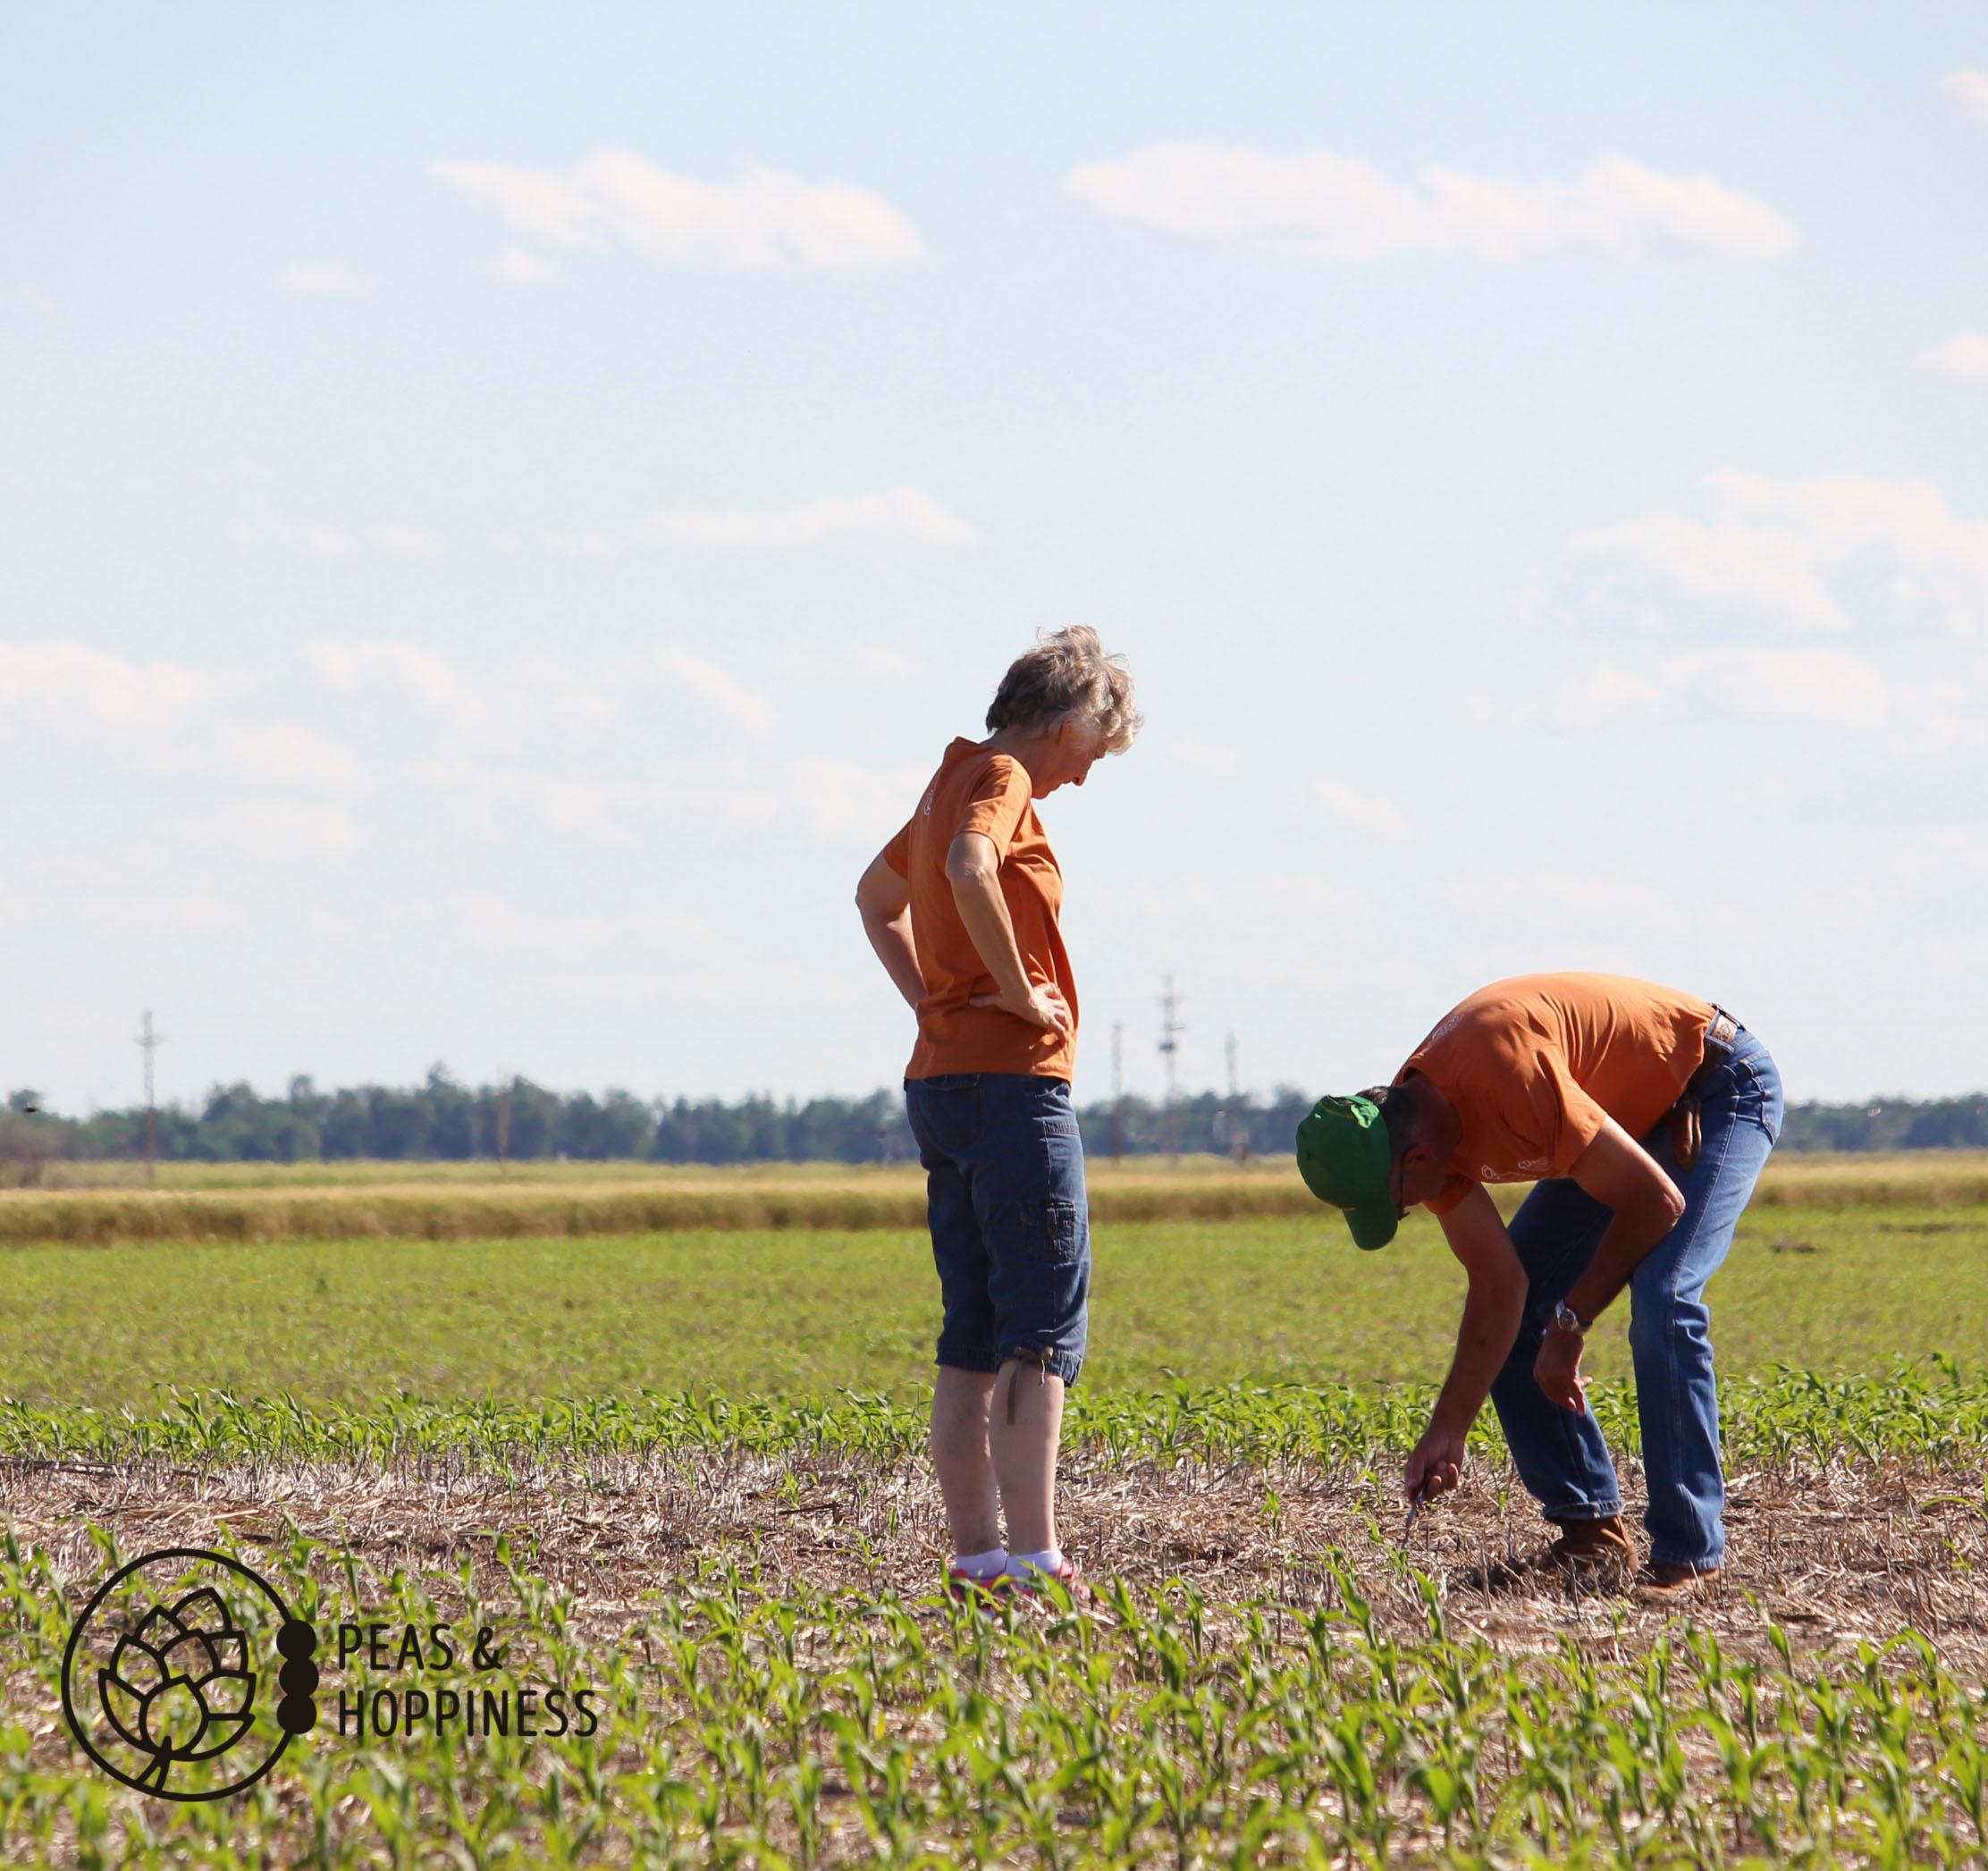 If they're near a field, they're farming. Checking to see if all seeds have germinated.